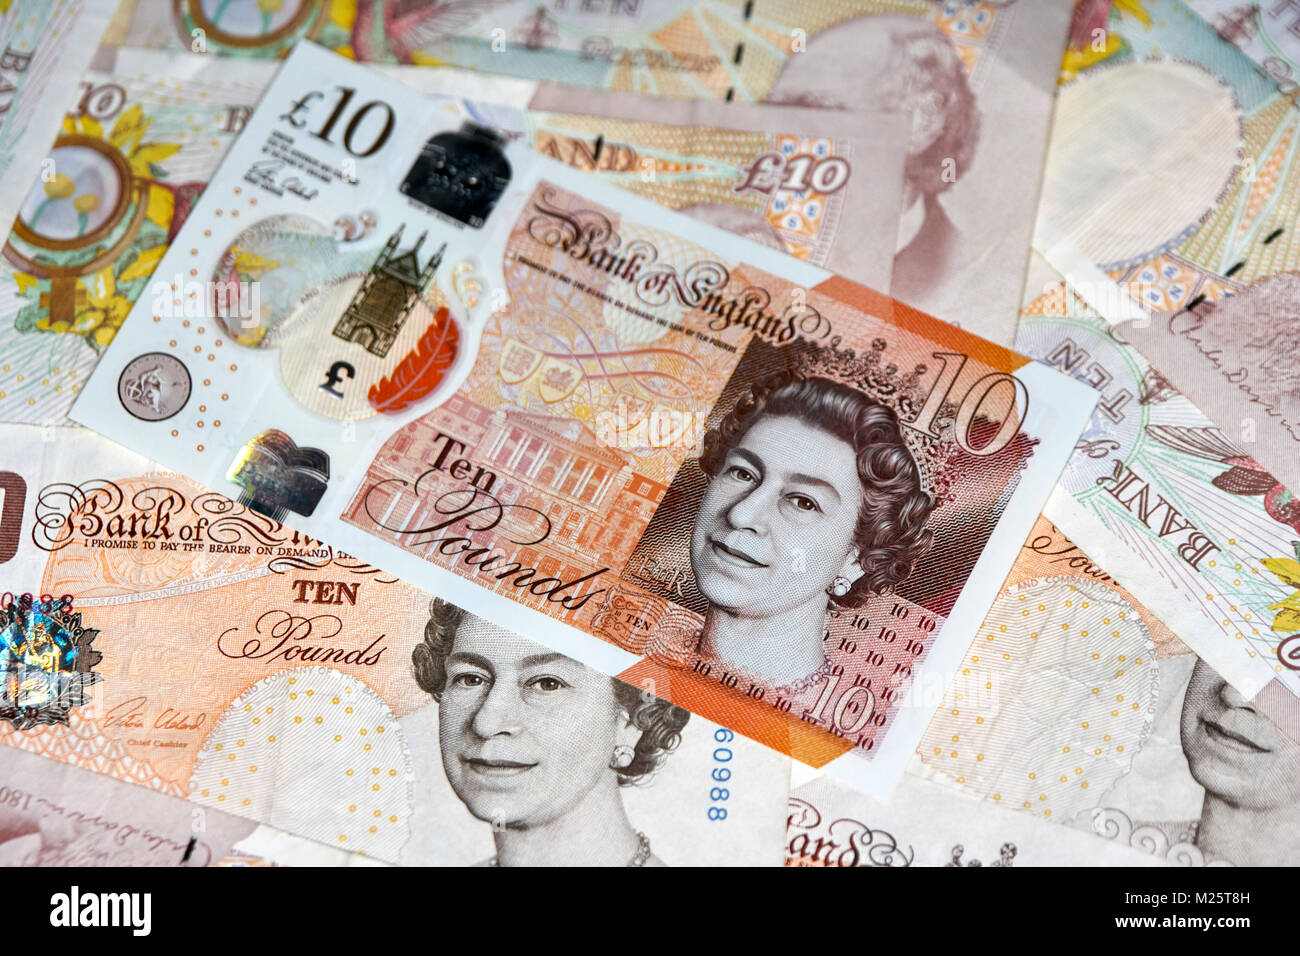 new polymer 10 quid notes with soon to be phased out paper 10 pound notes in the uk - Stock Image